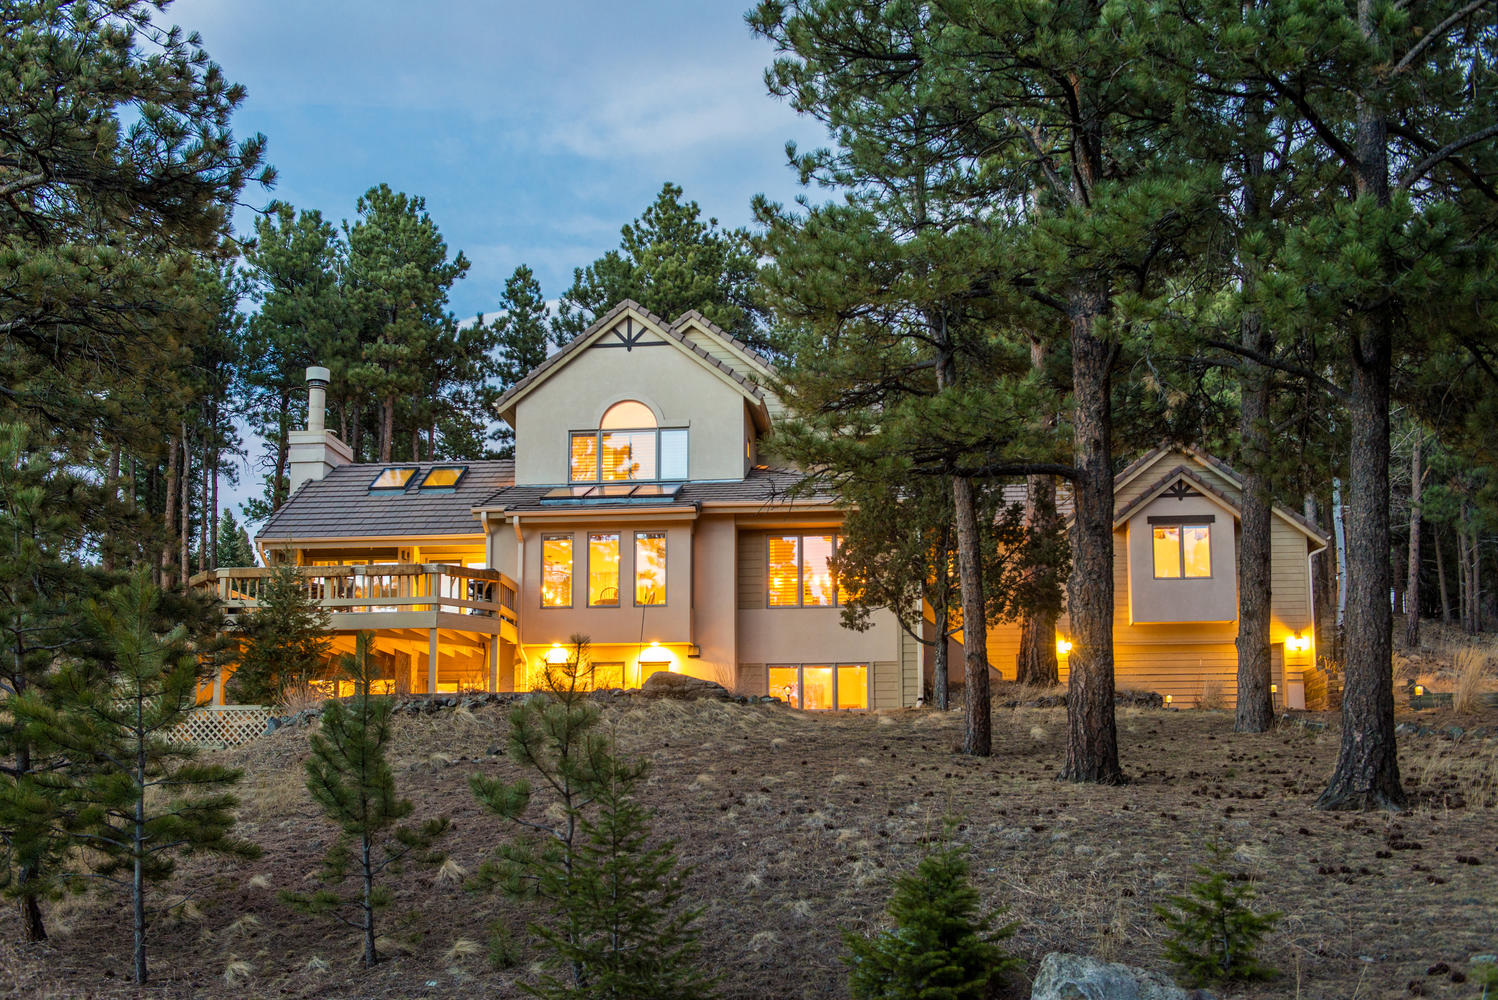 Single Family Home for Sale at Quiet Setting with Snow Capped Mountain Views 978 Northridge Drive Golden, Colorado 80401 United States